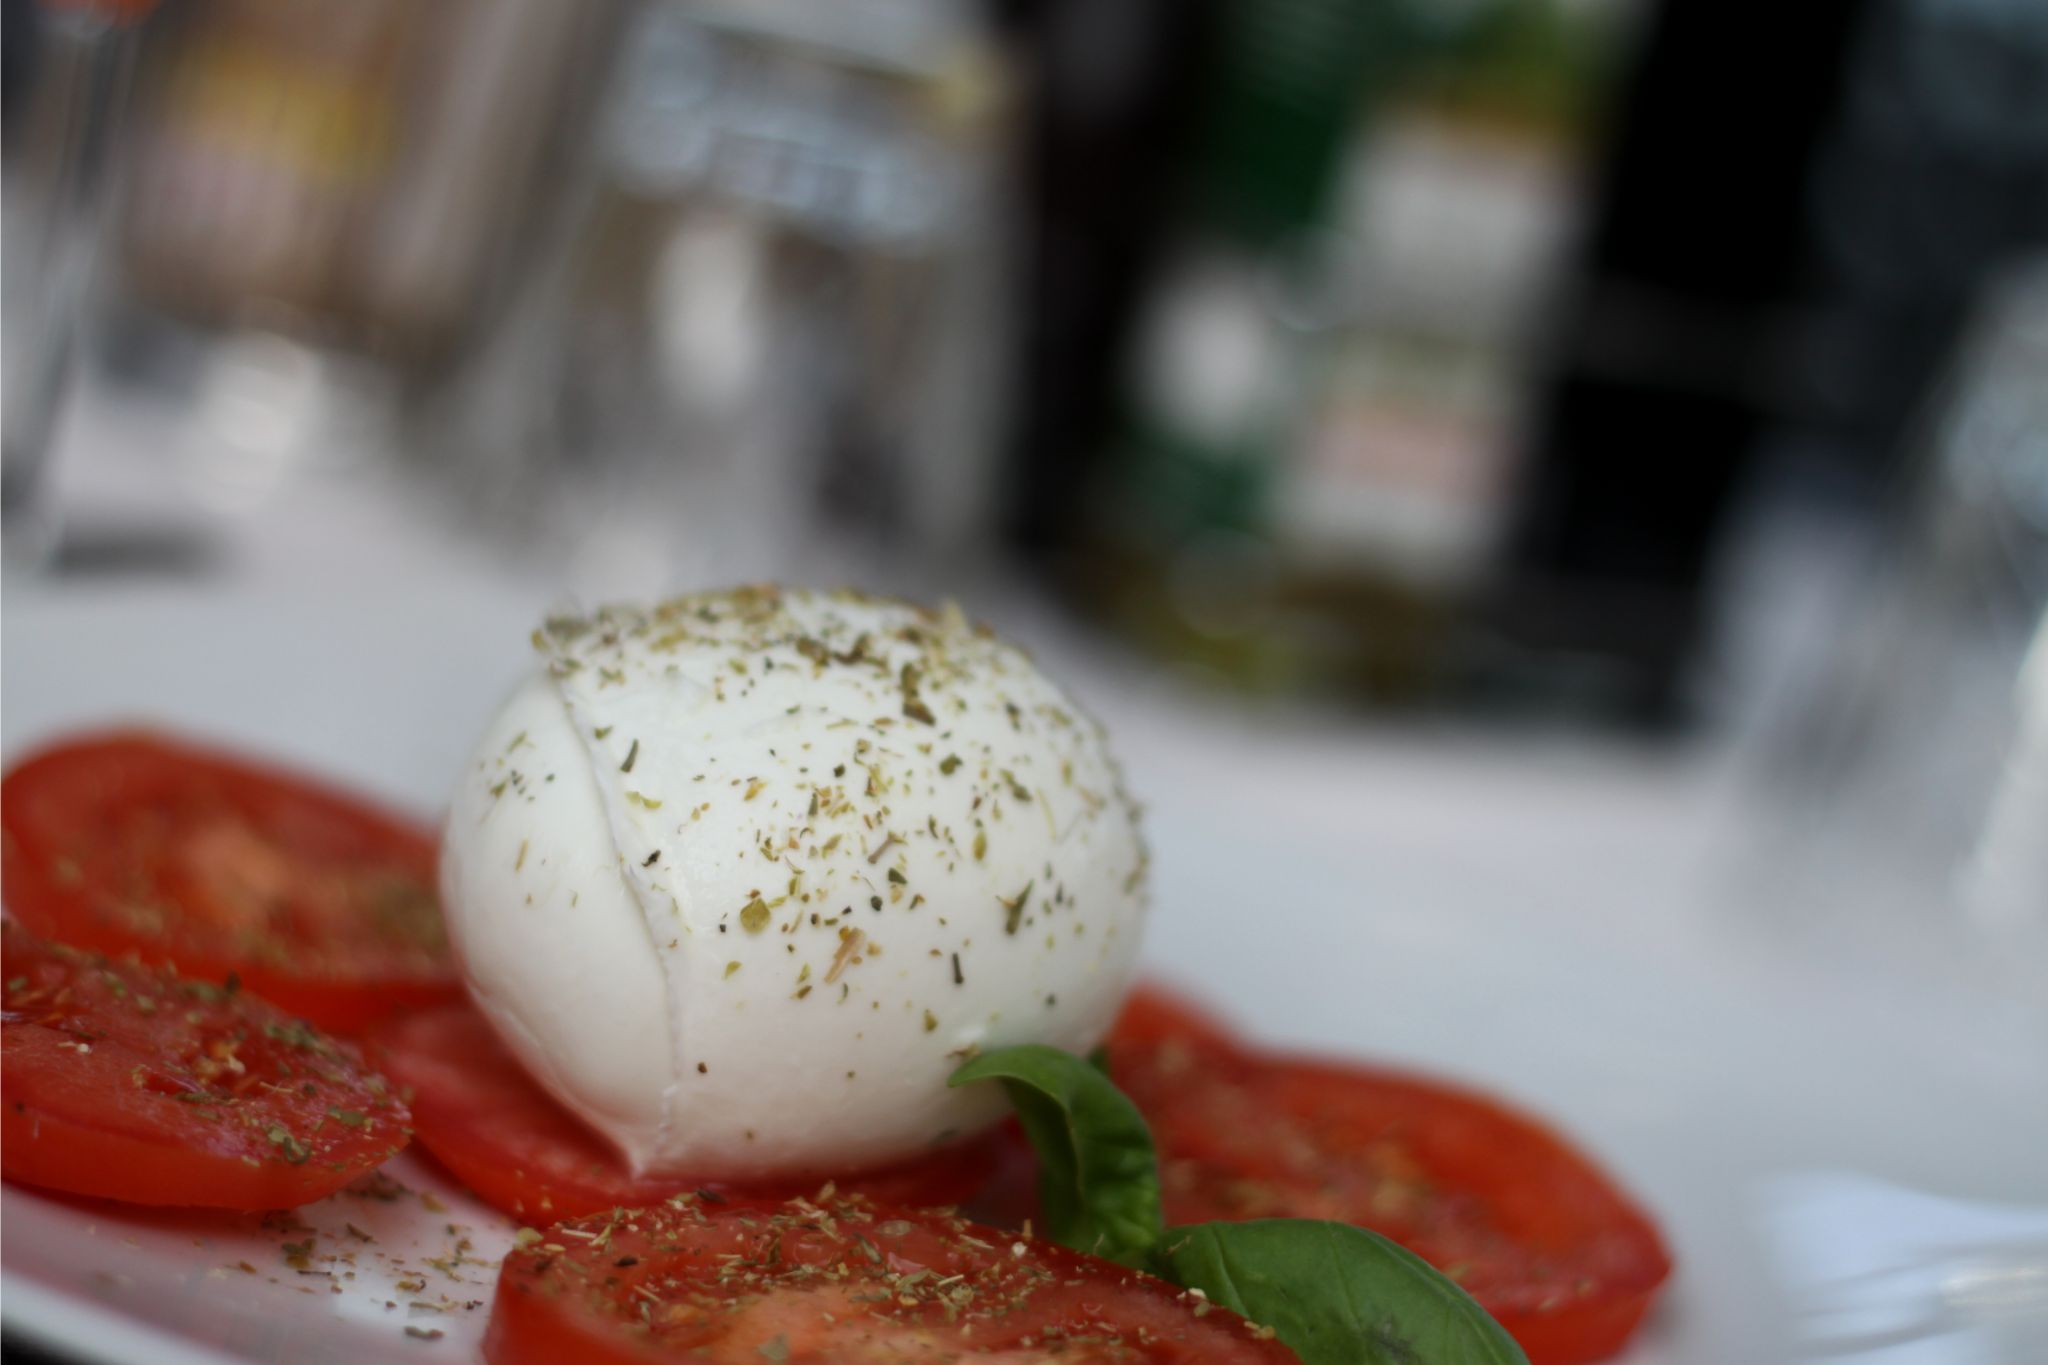 Tomato and mozzarella at Como